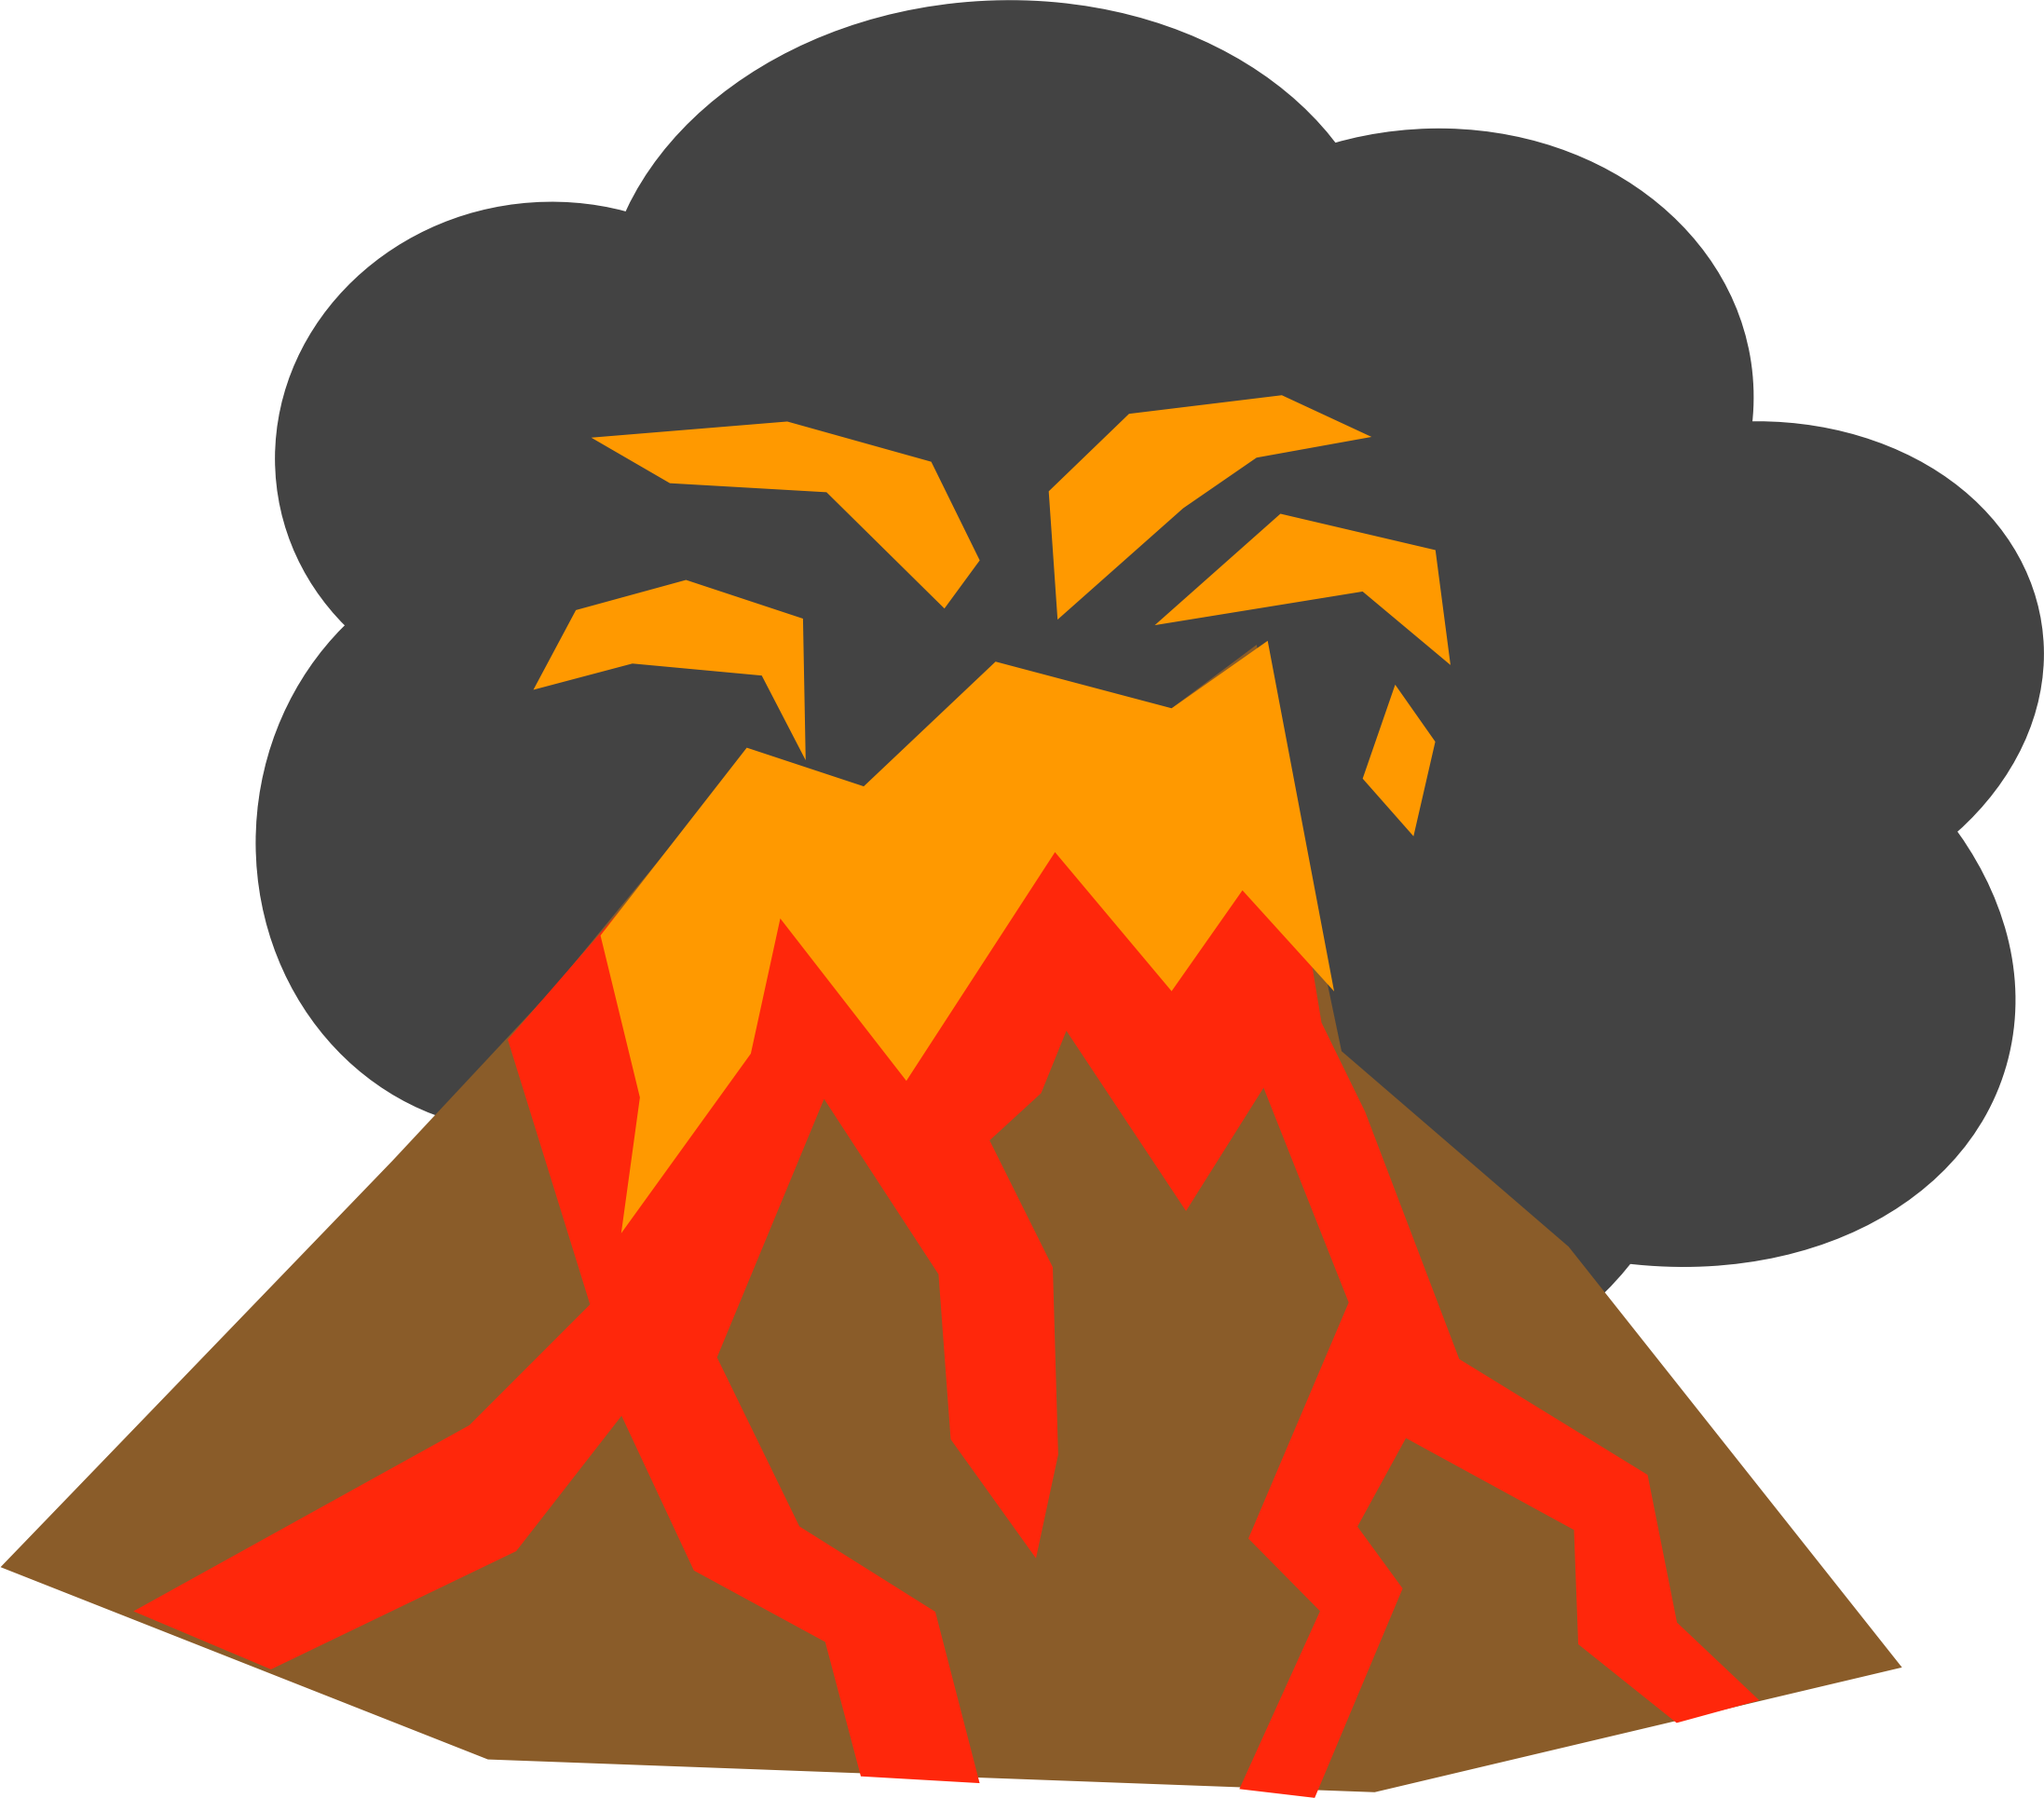 Volcan clipart 1 » Clipart Station.